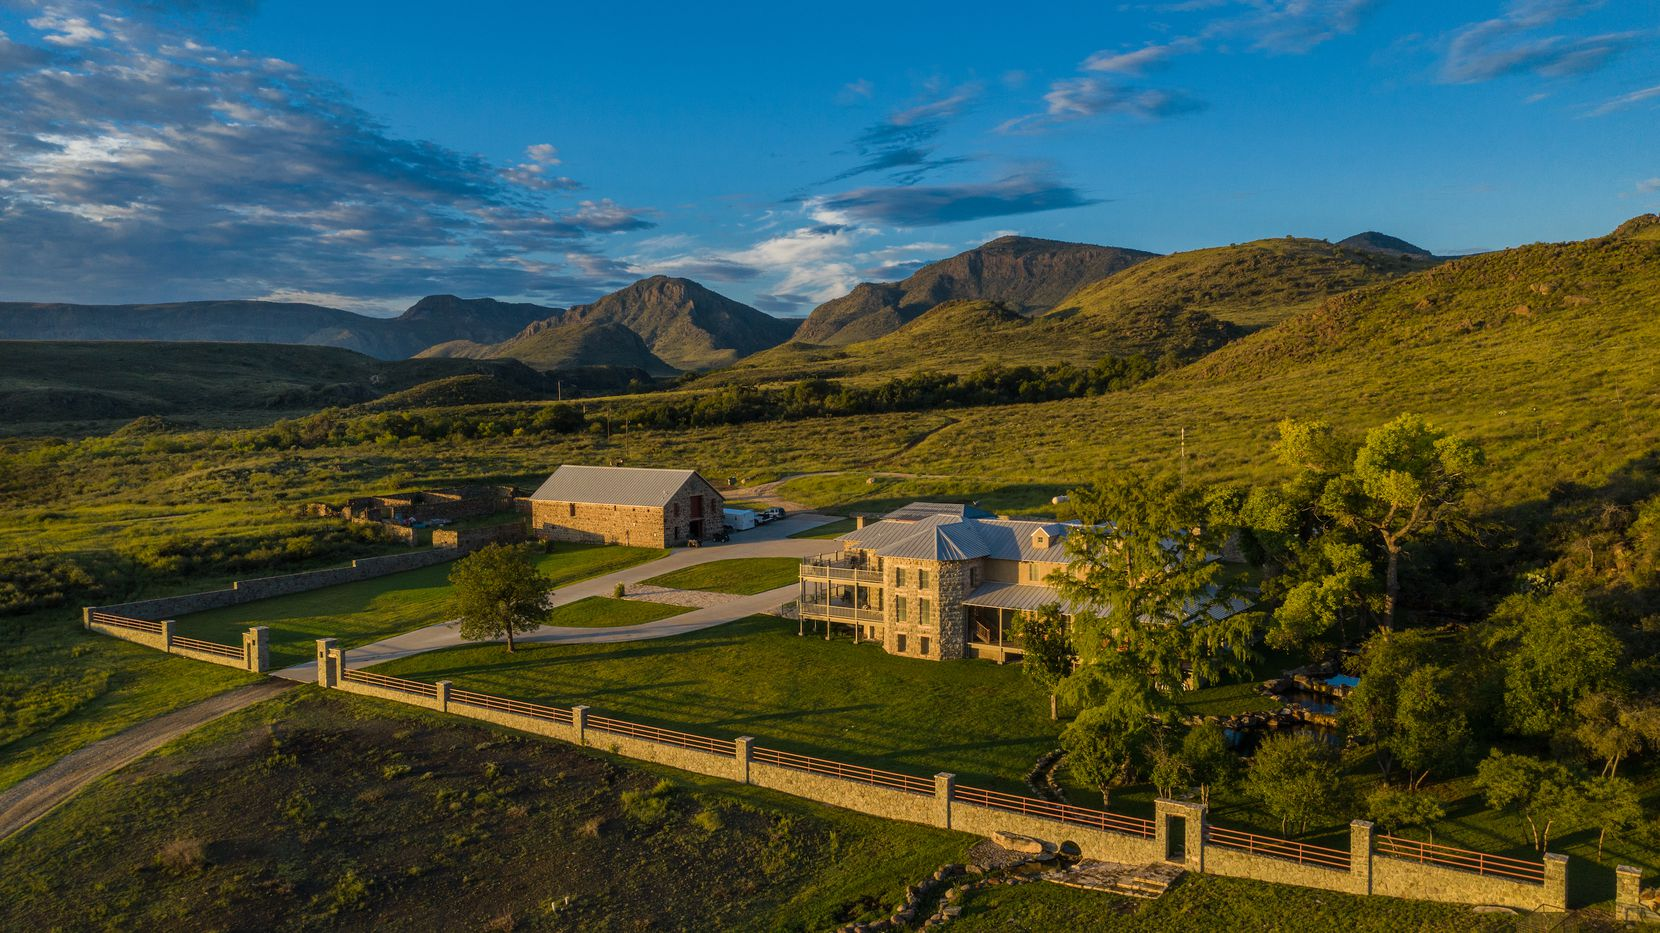 The KC7 Ranch includes a nearly 10,000-square-foot lodge that dates from the 1890s.